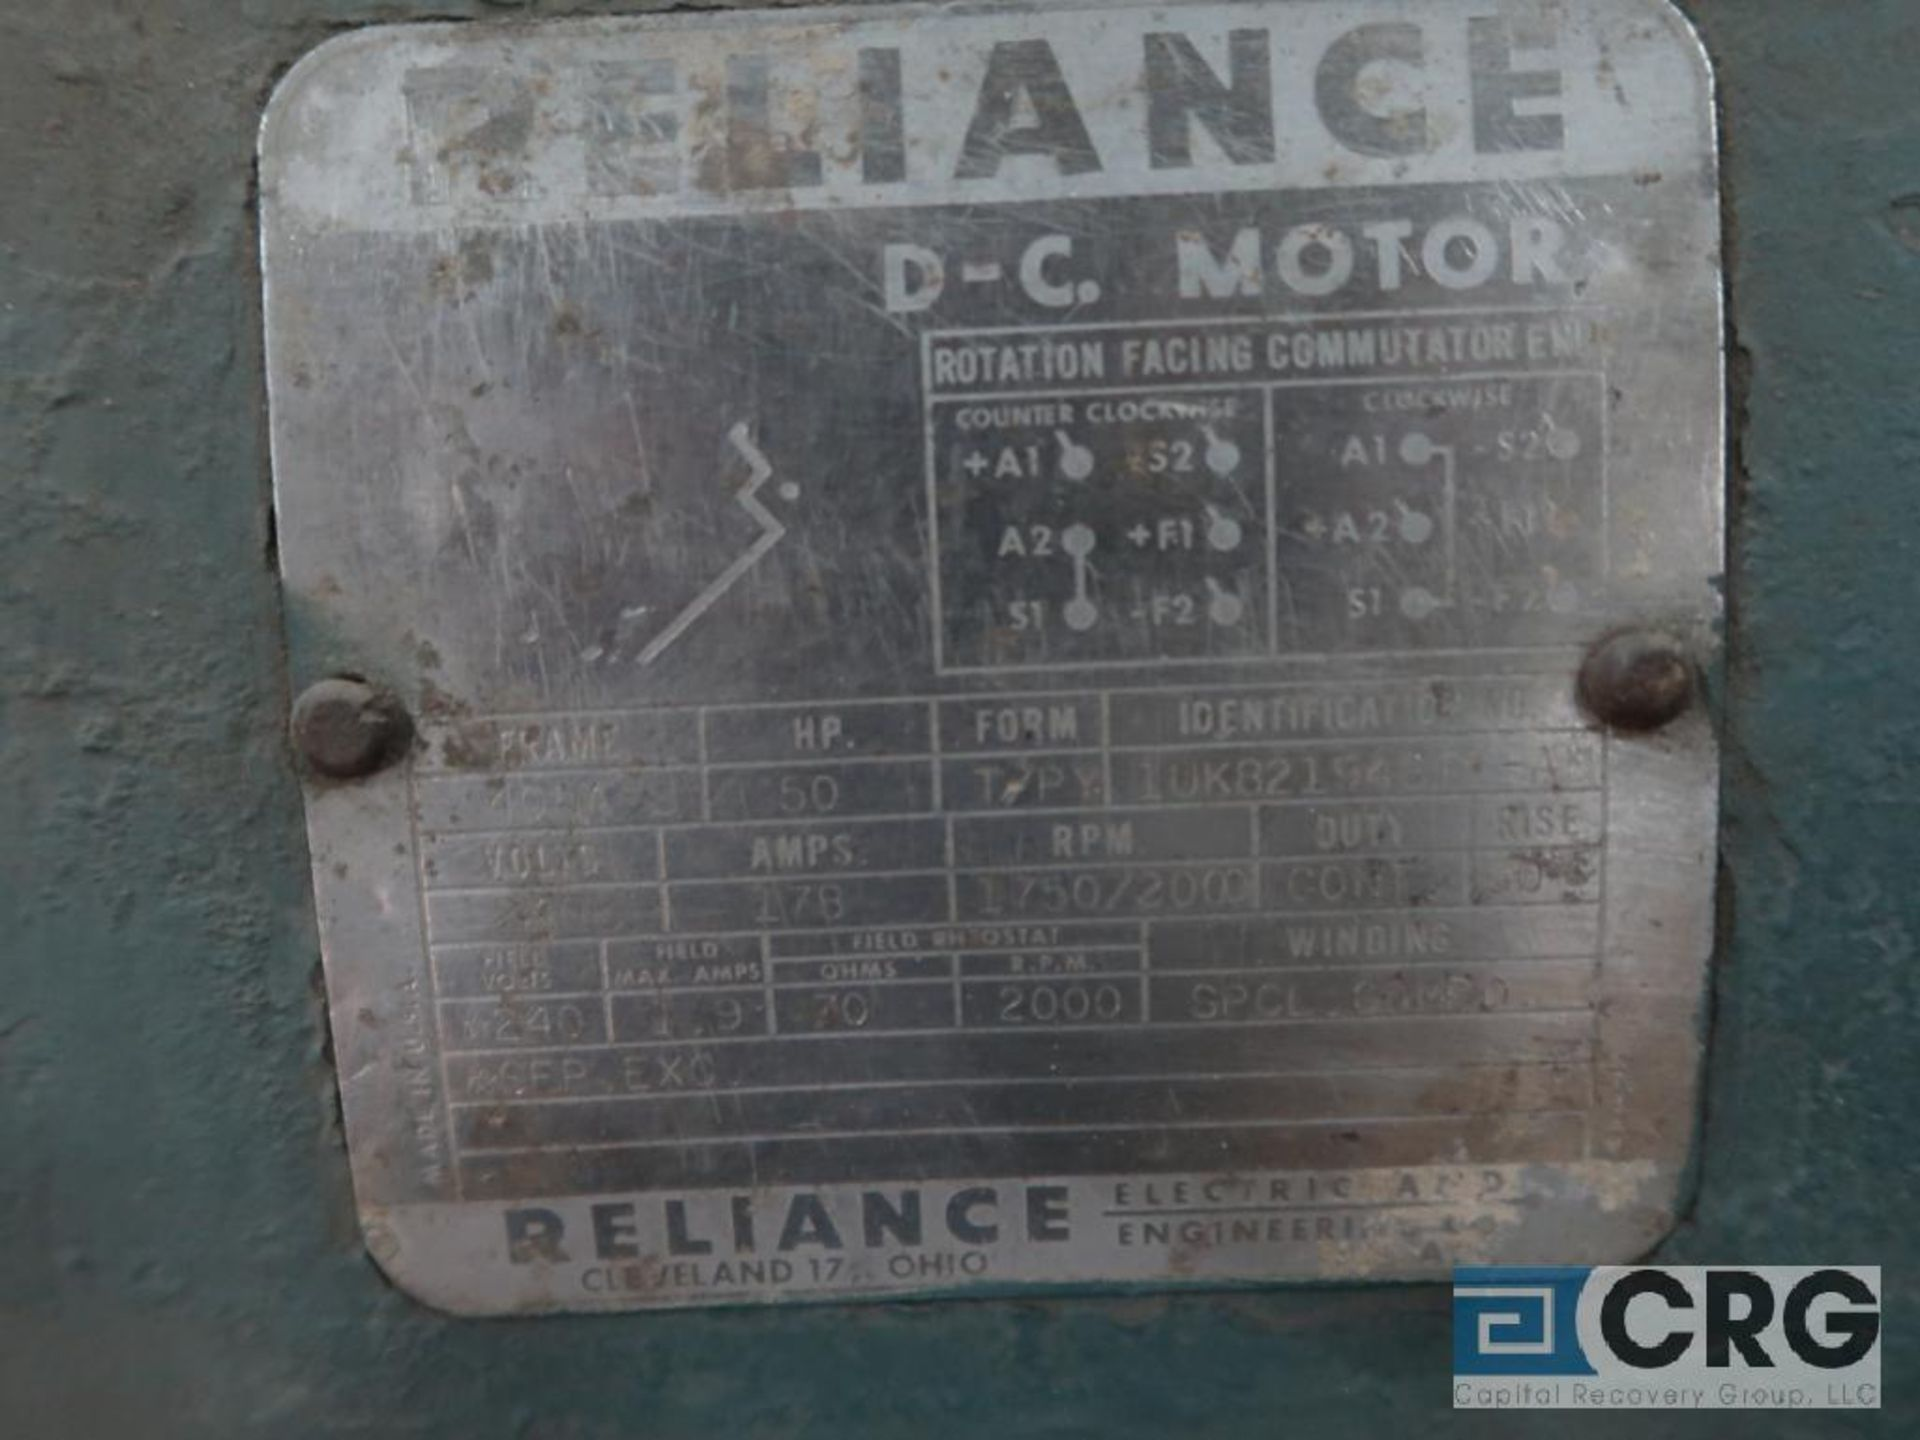 Reliance D-C motor, 50 HP, 1,750/2,000 RPMs, 240 volt, 3 ph., 405A-S frame (Finish Building) - Image 2 of 2